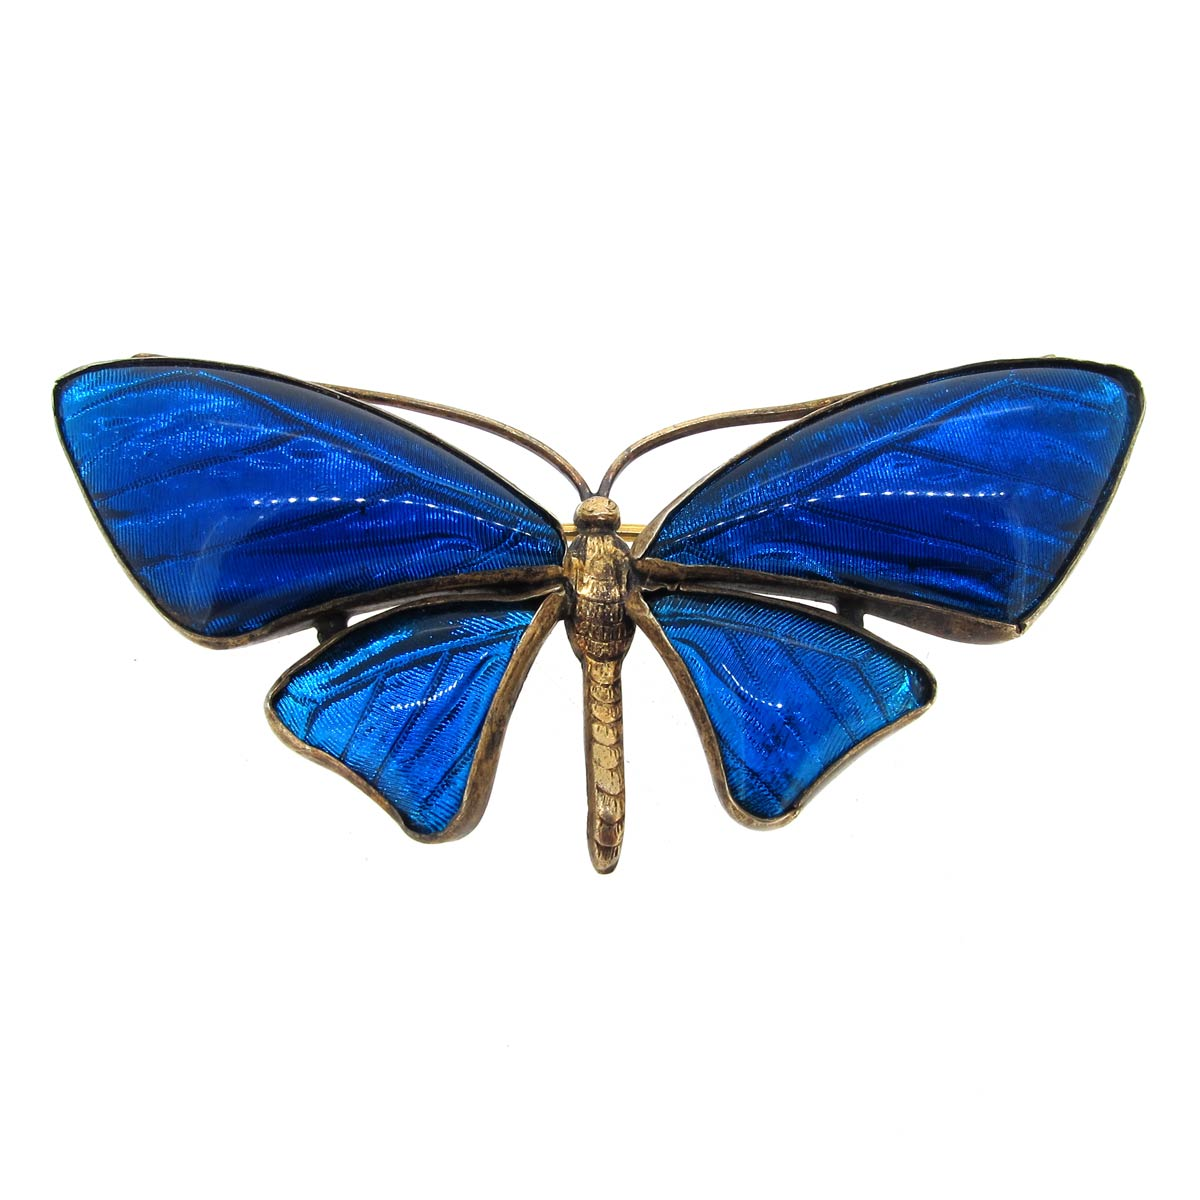 Antique Butterfly Wing Brooch